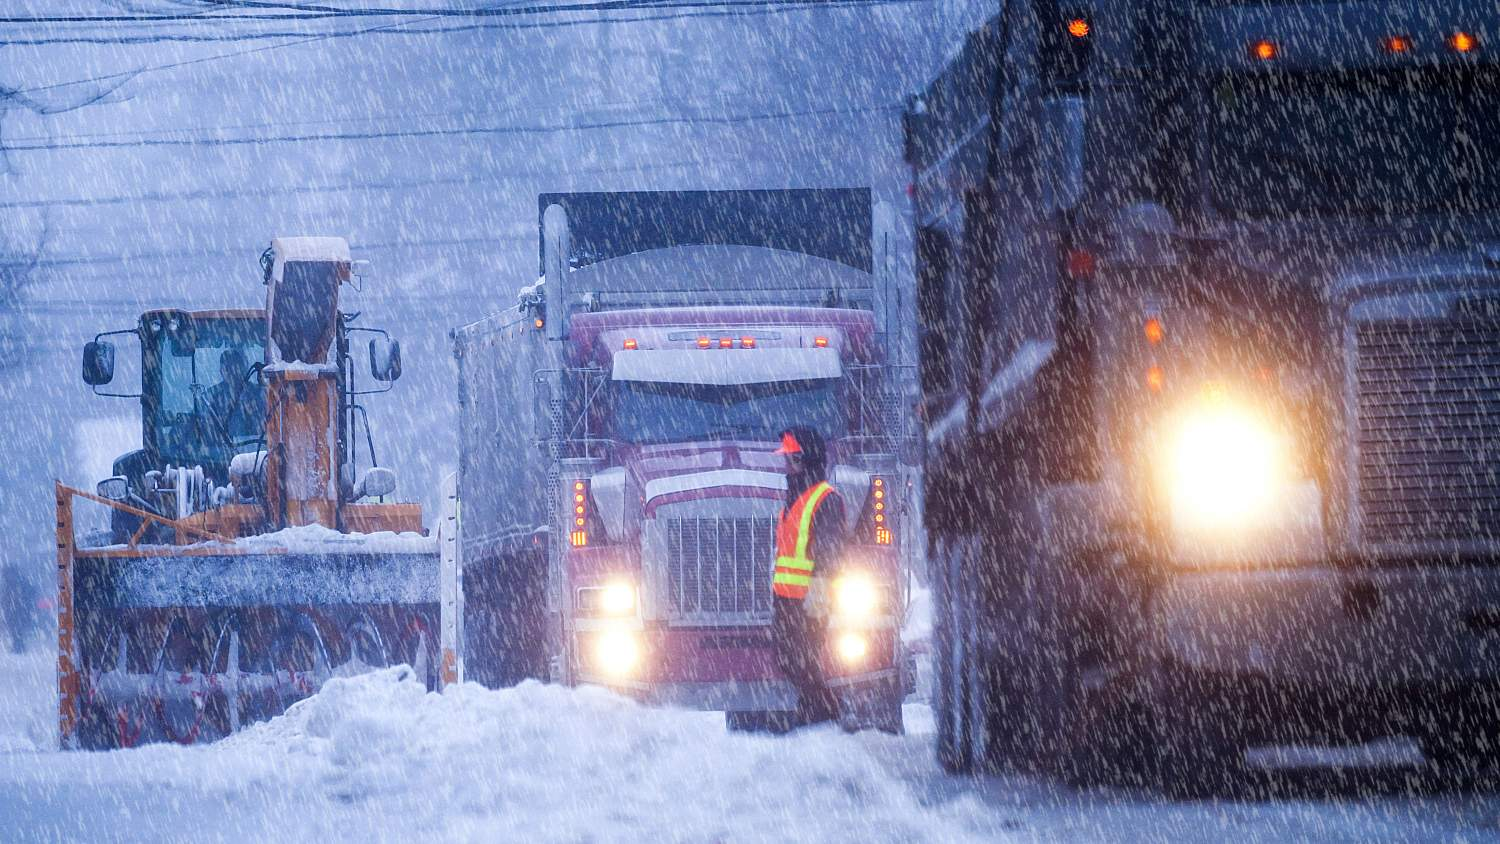 Trucks in a winter storm